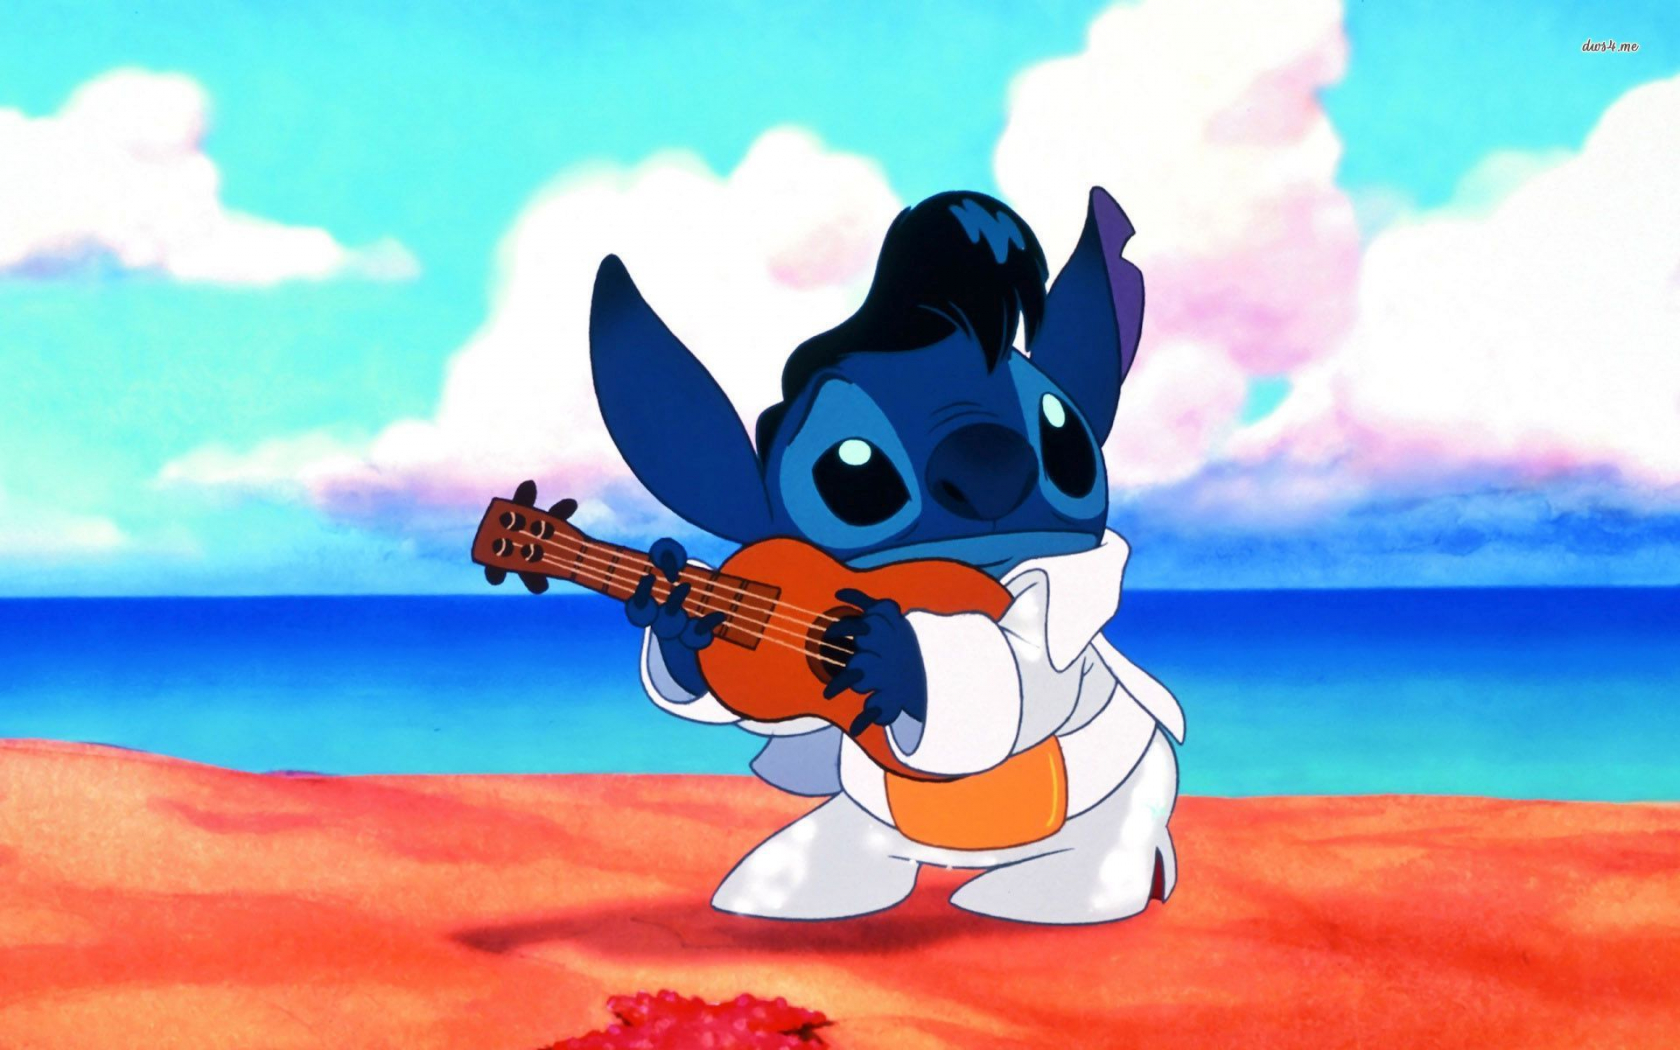 Lilo And Stitch Wallpaper Desktop MEMEs 1920x1200 Download Resolutions 1920x1080